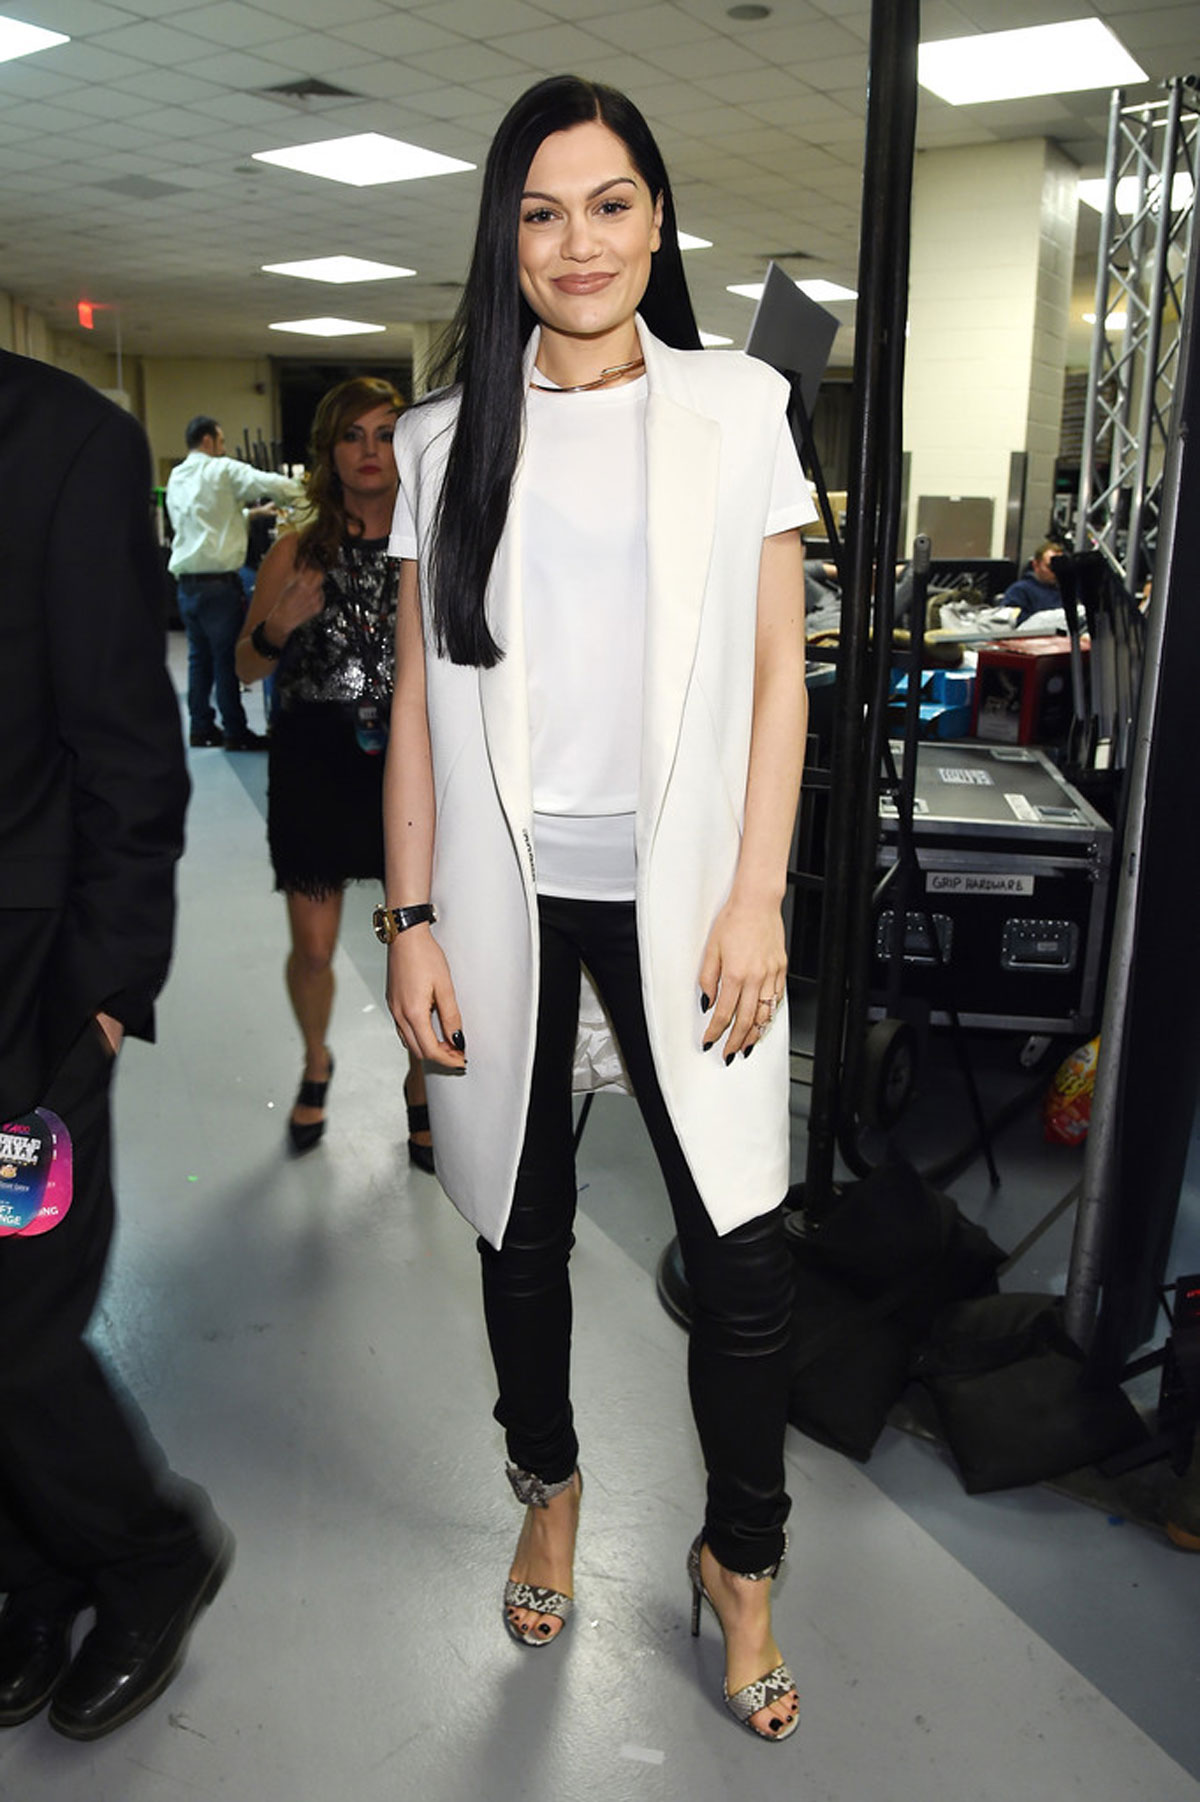 Jessie J attends Z100's Jingle Ball